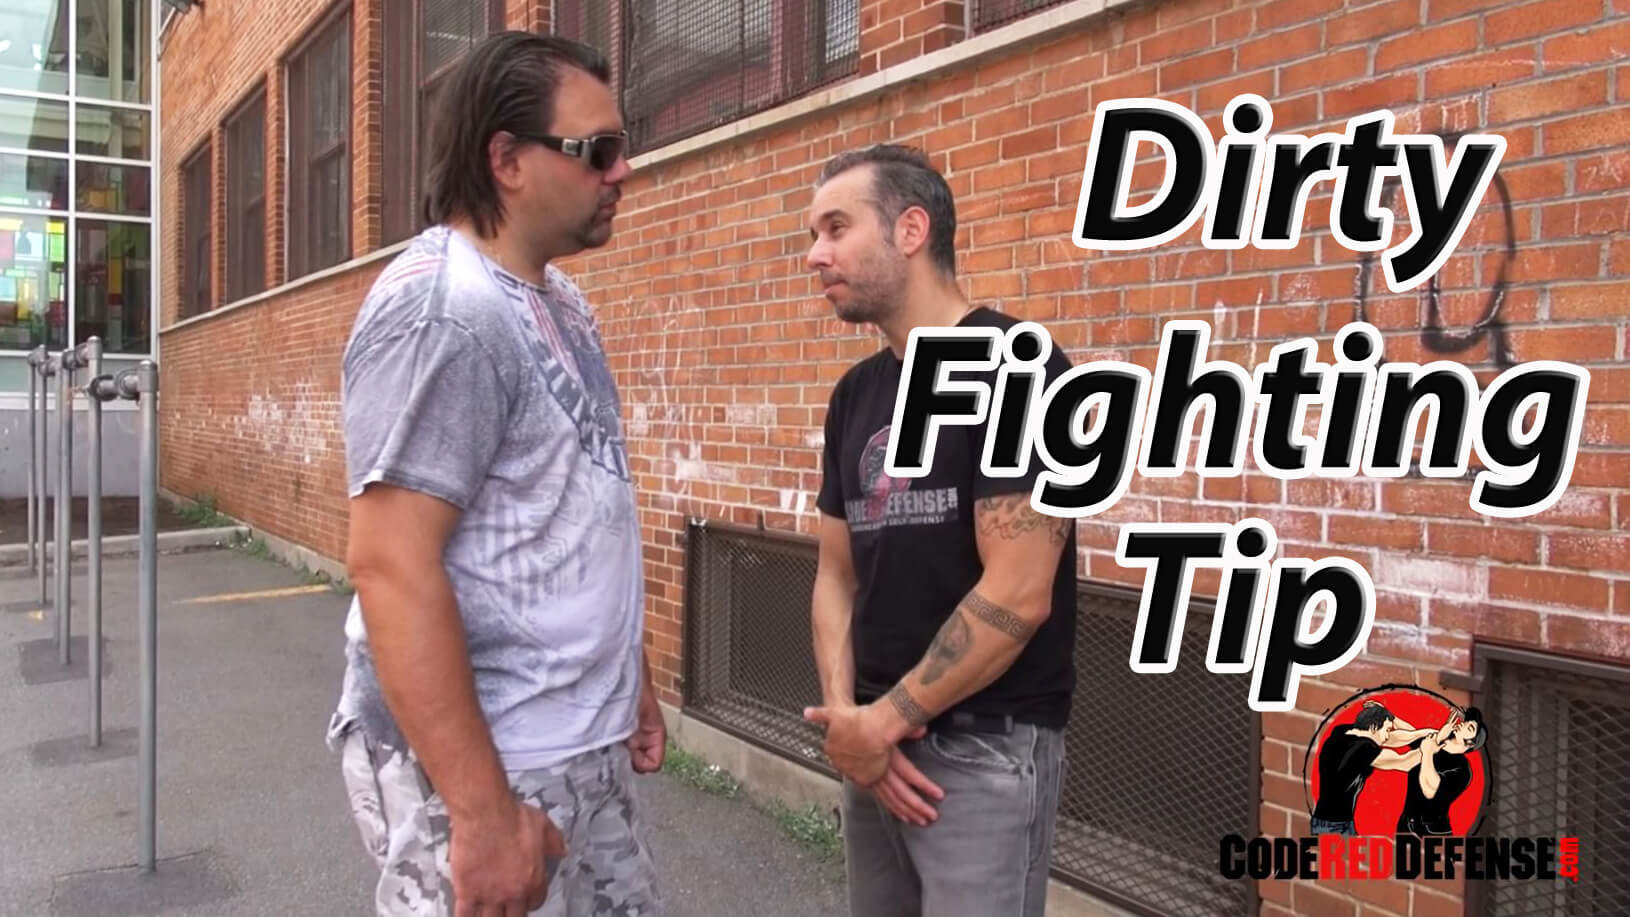 learn self defense tips to defend yourself